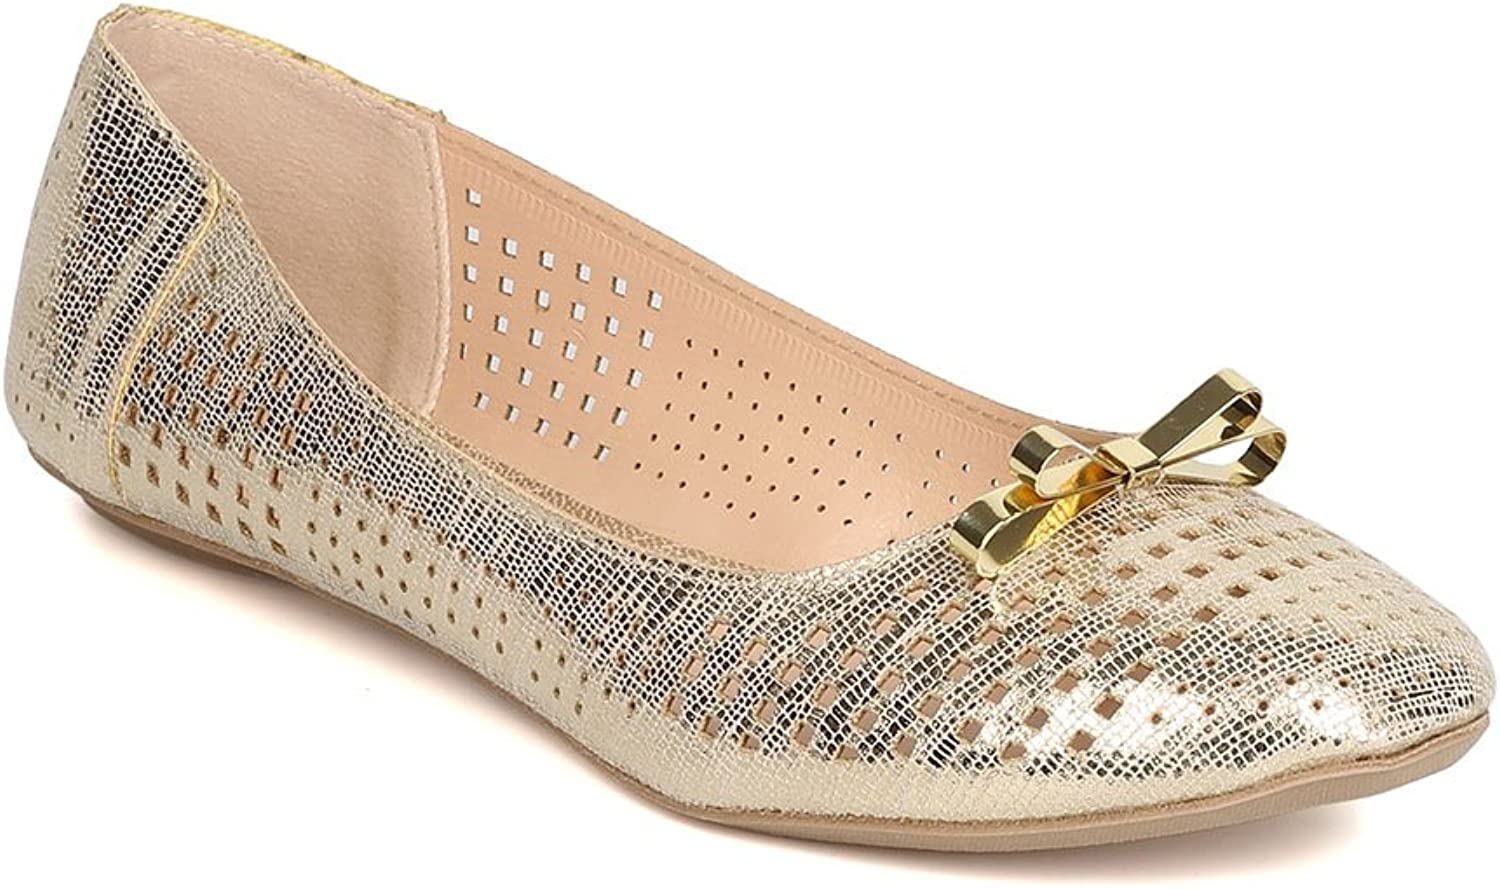 Qupid Women Metallic Leatherette Perforated Bow Tie Ballet Flat FI21 - Champagne